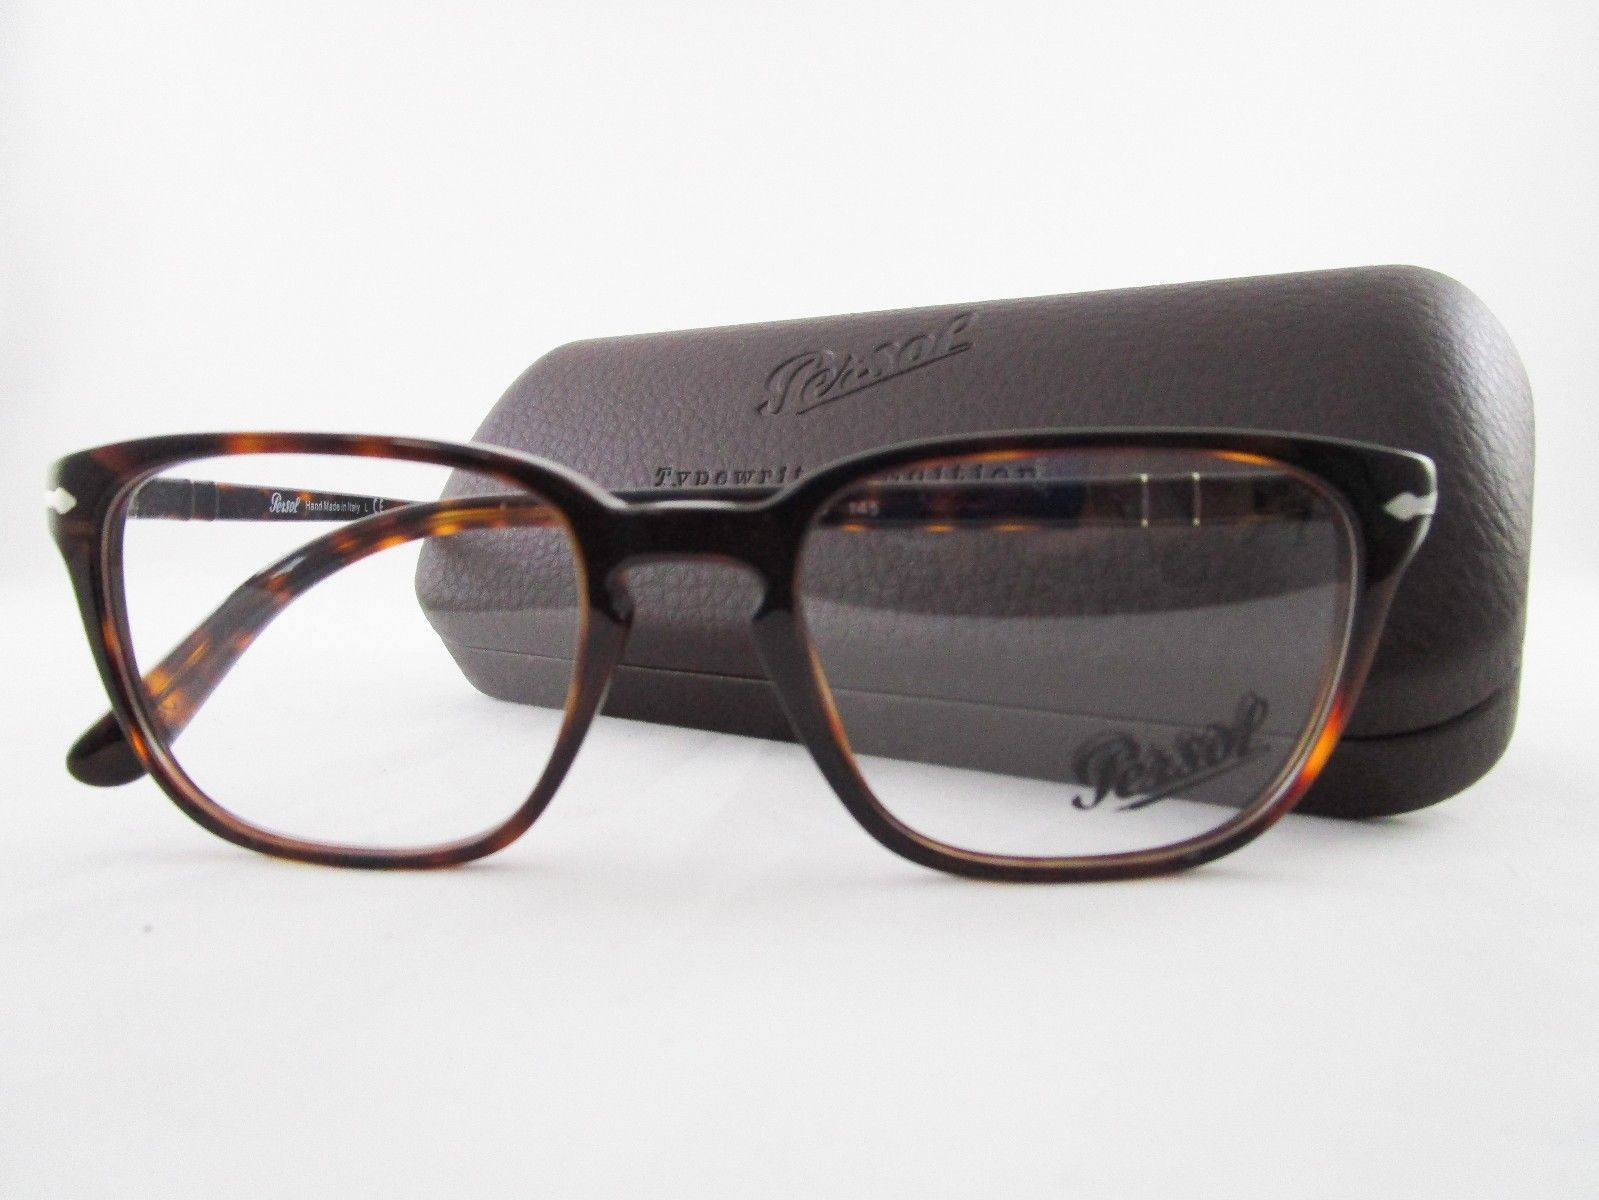 Persol 3117-V 24 Optical Frame Dark Havana and 25 similar items